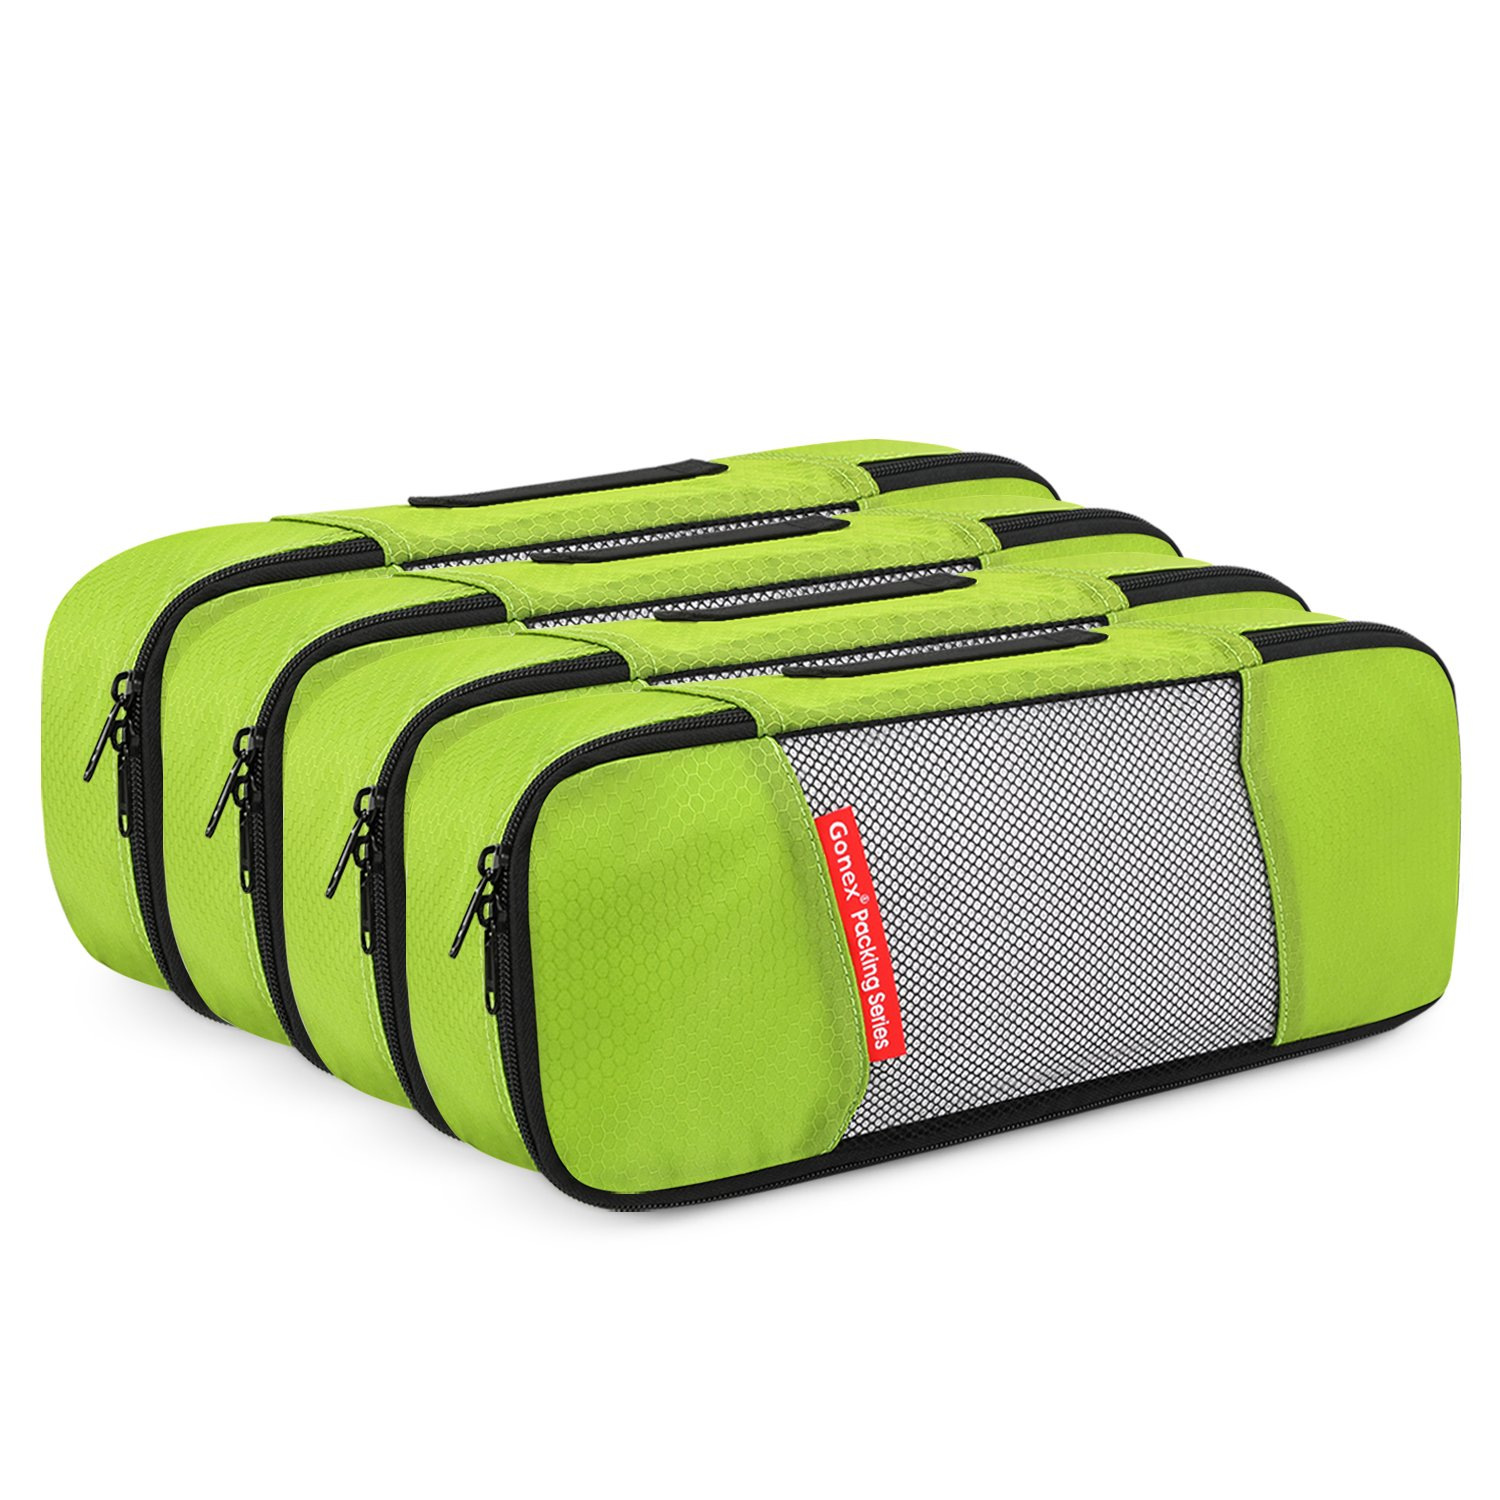 Gonex Packing Cubes Travel Organizer Cubes for Luggage 4 Slim Green